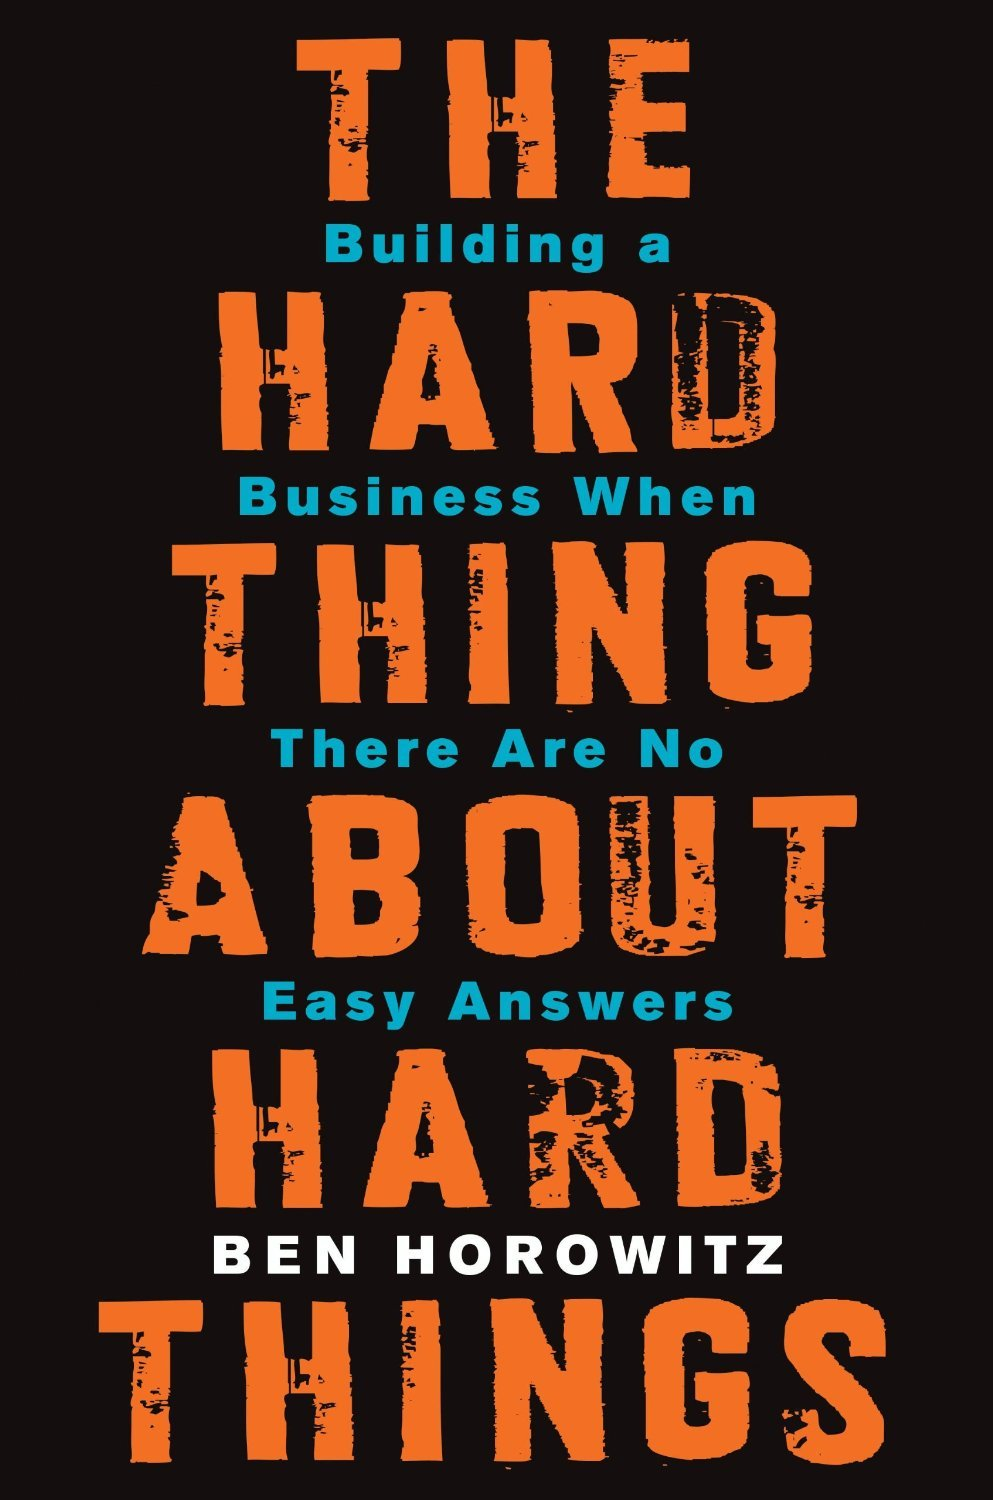 ben-horowitz-the-hard-thing-about-hard-things